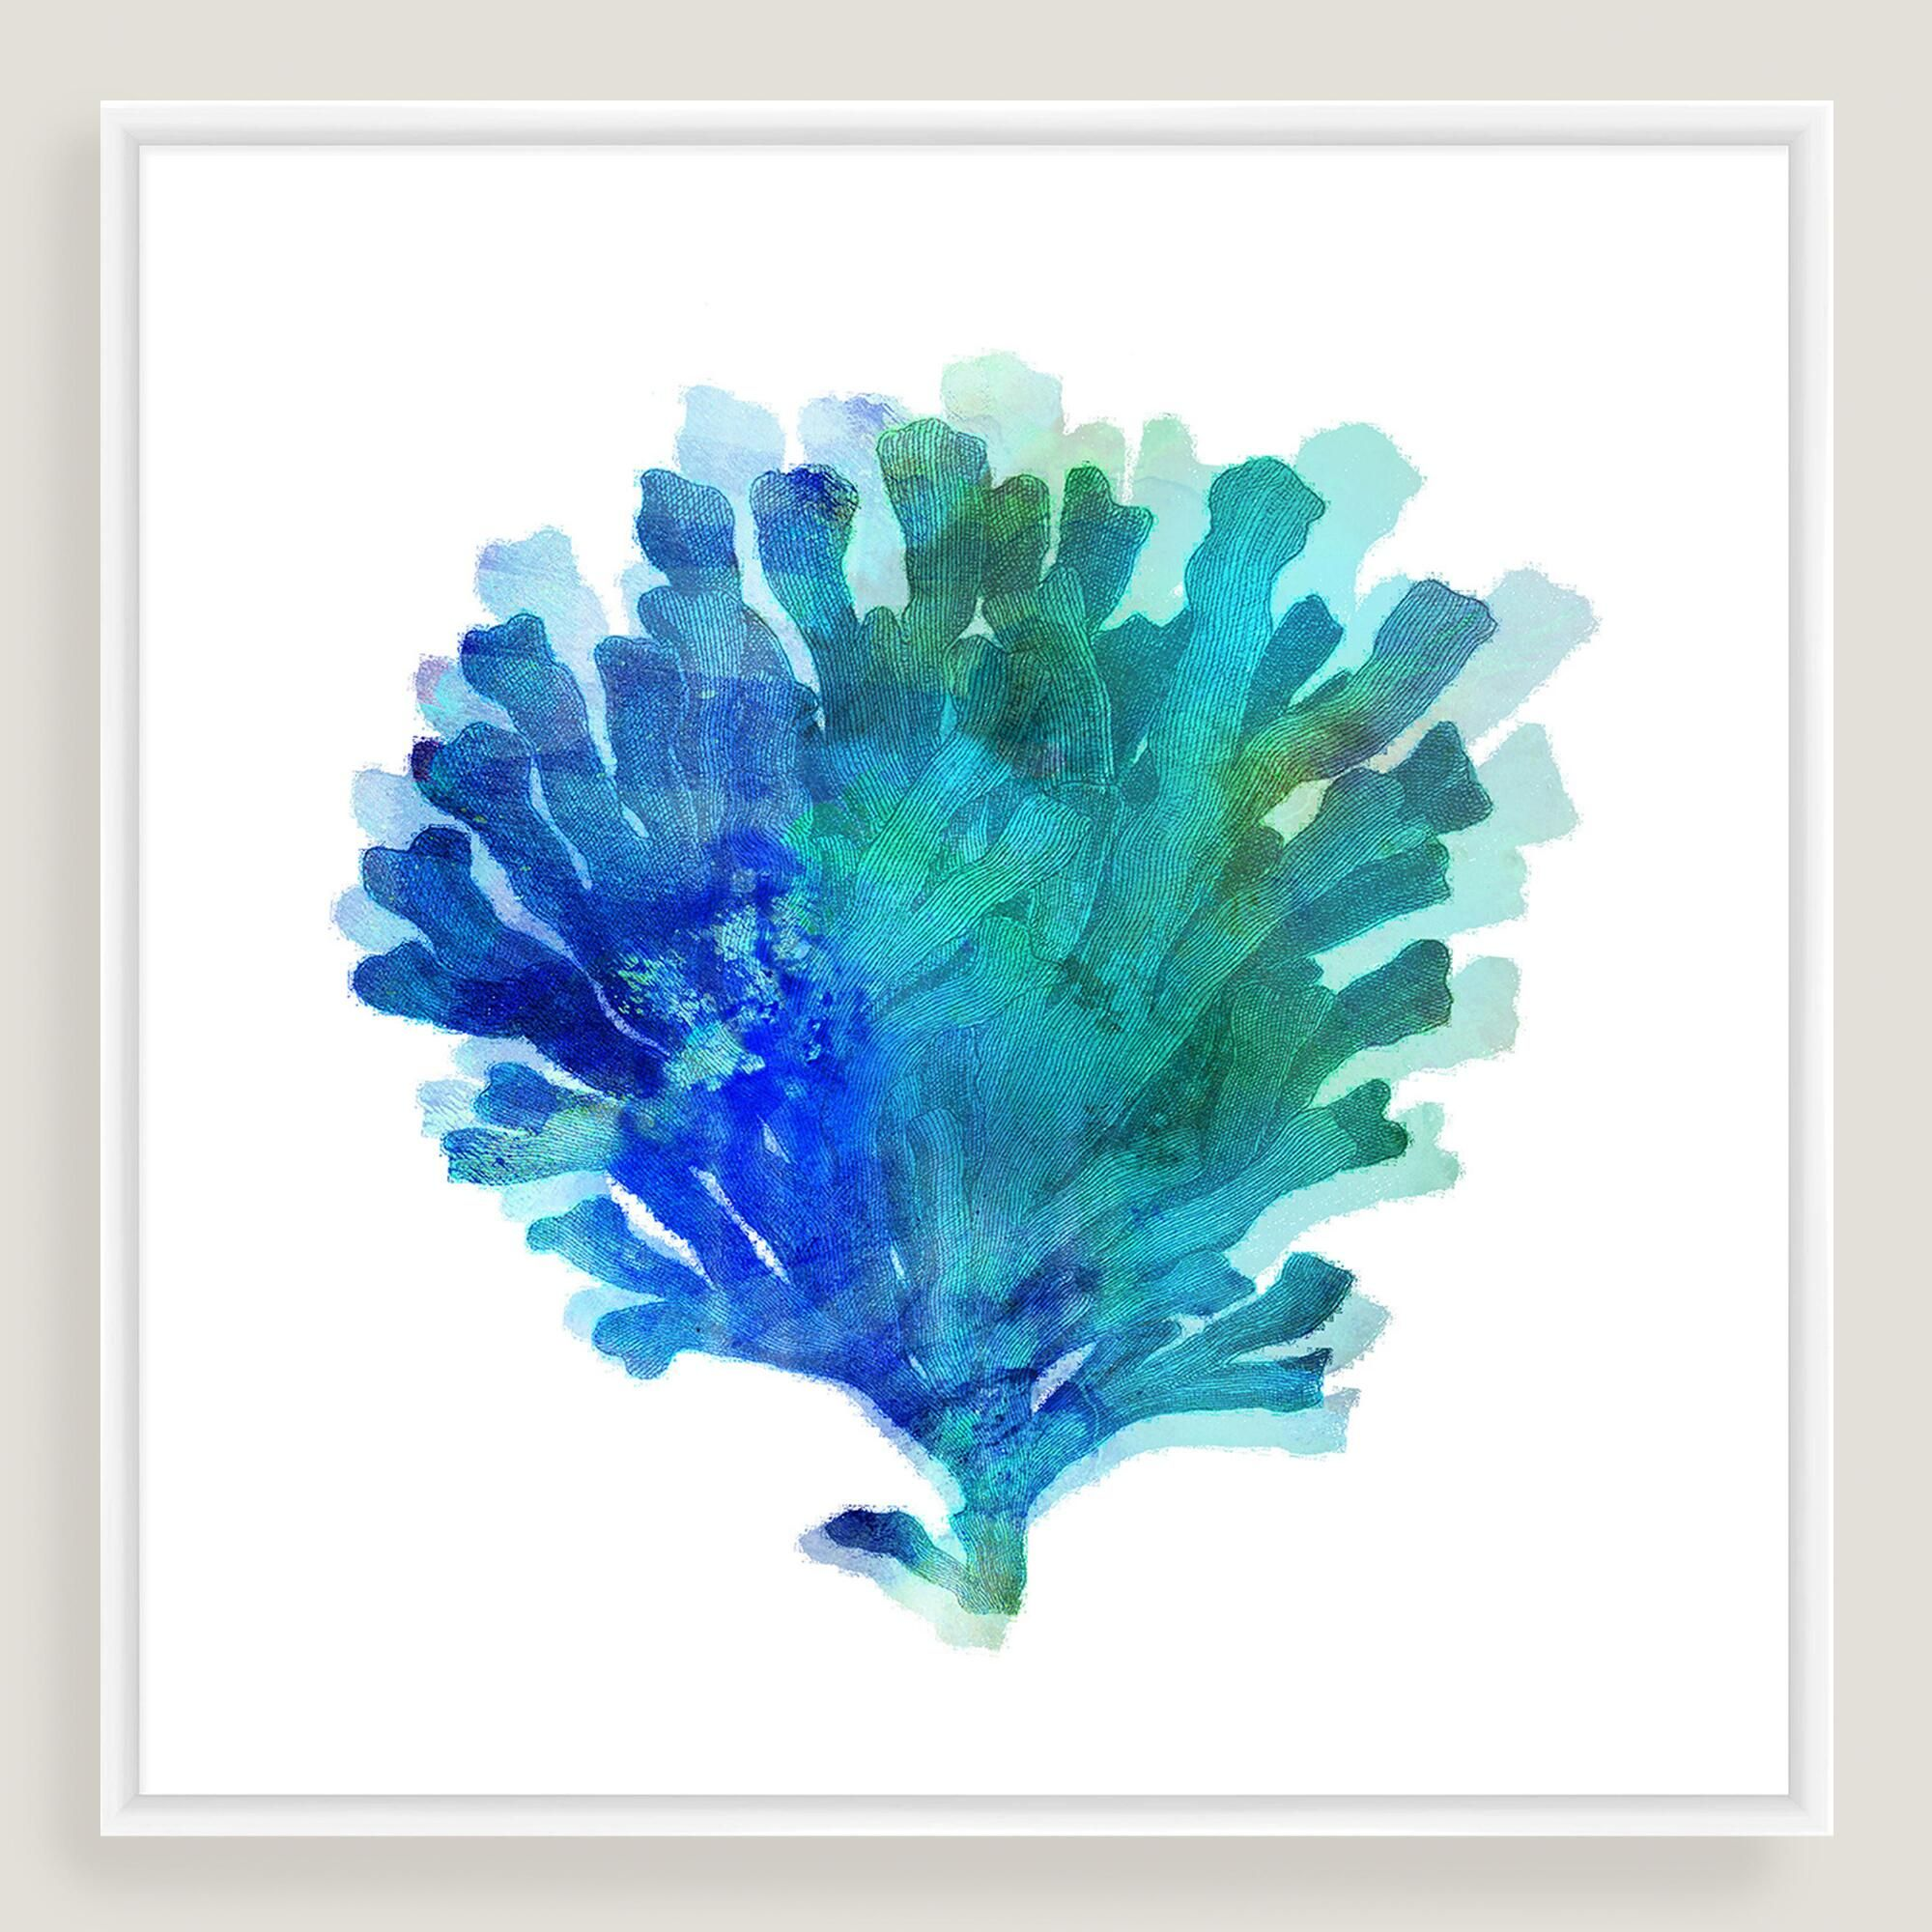 Our watercolor art print of branch coral adds a refreshing vibe to